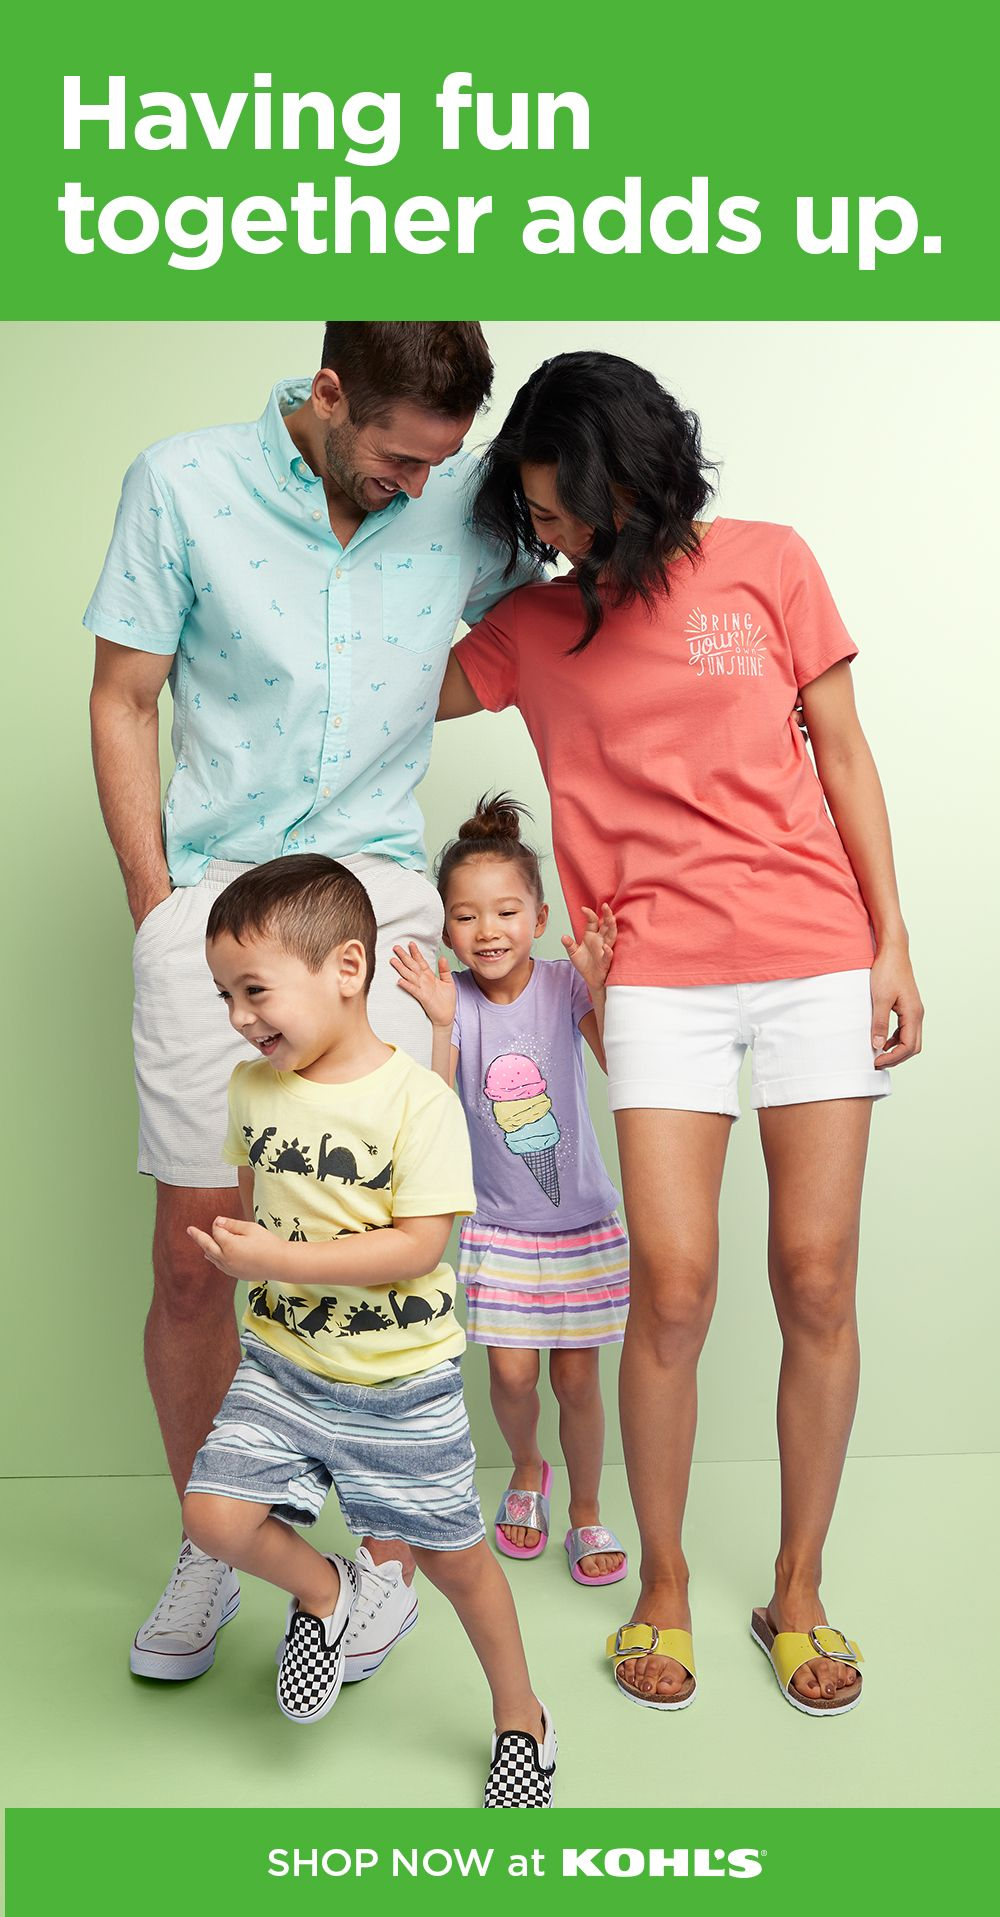 Find vacation clothing for the whole family at Kohl's